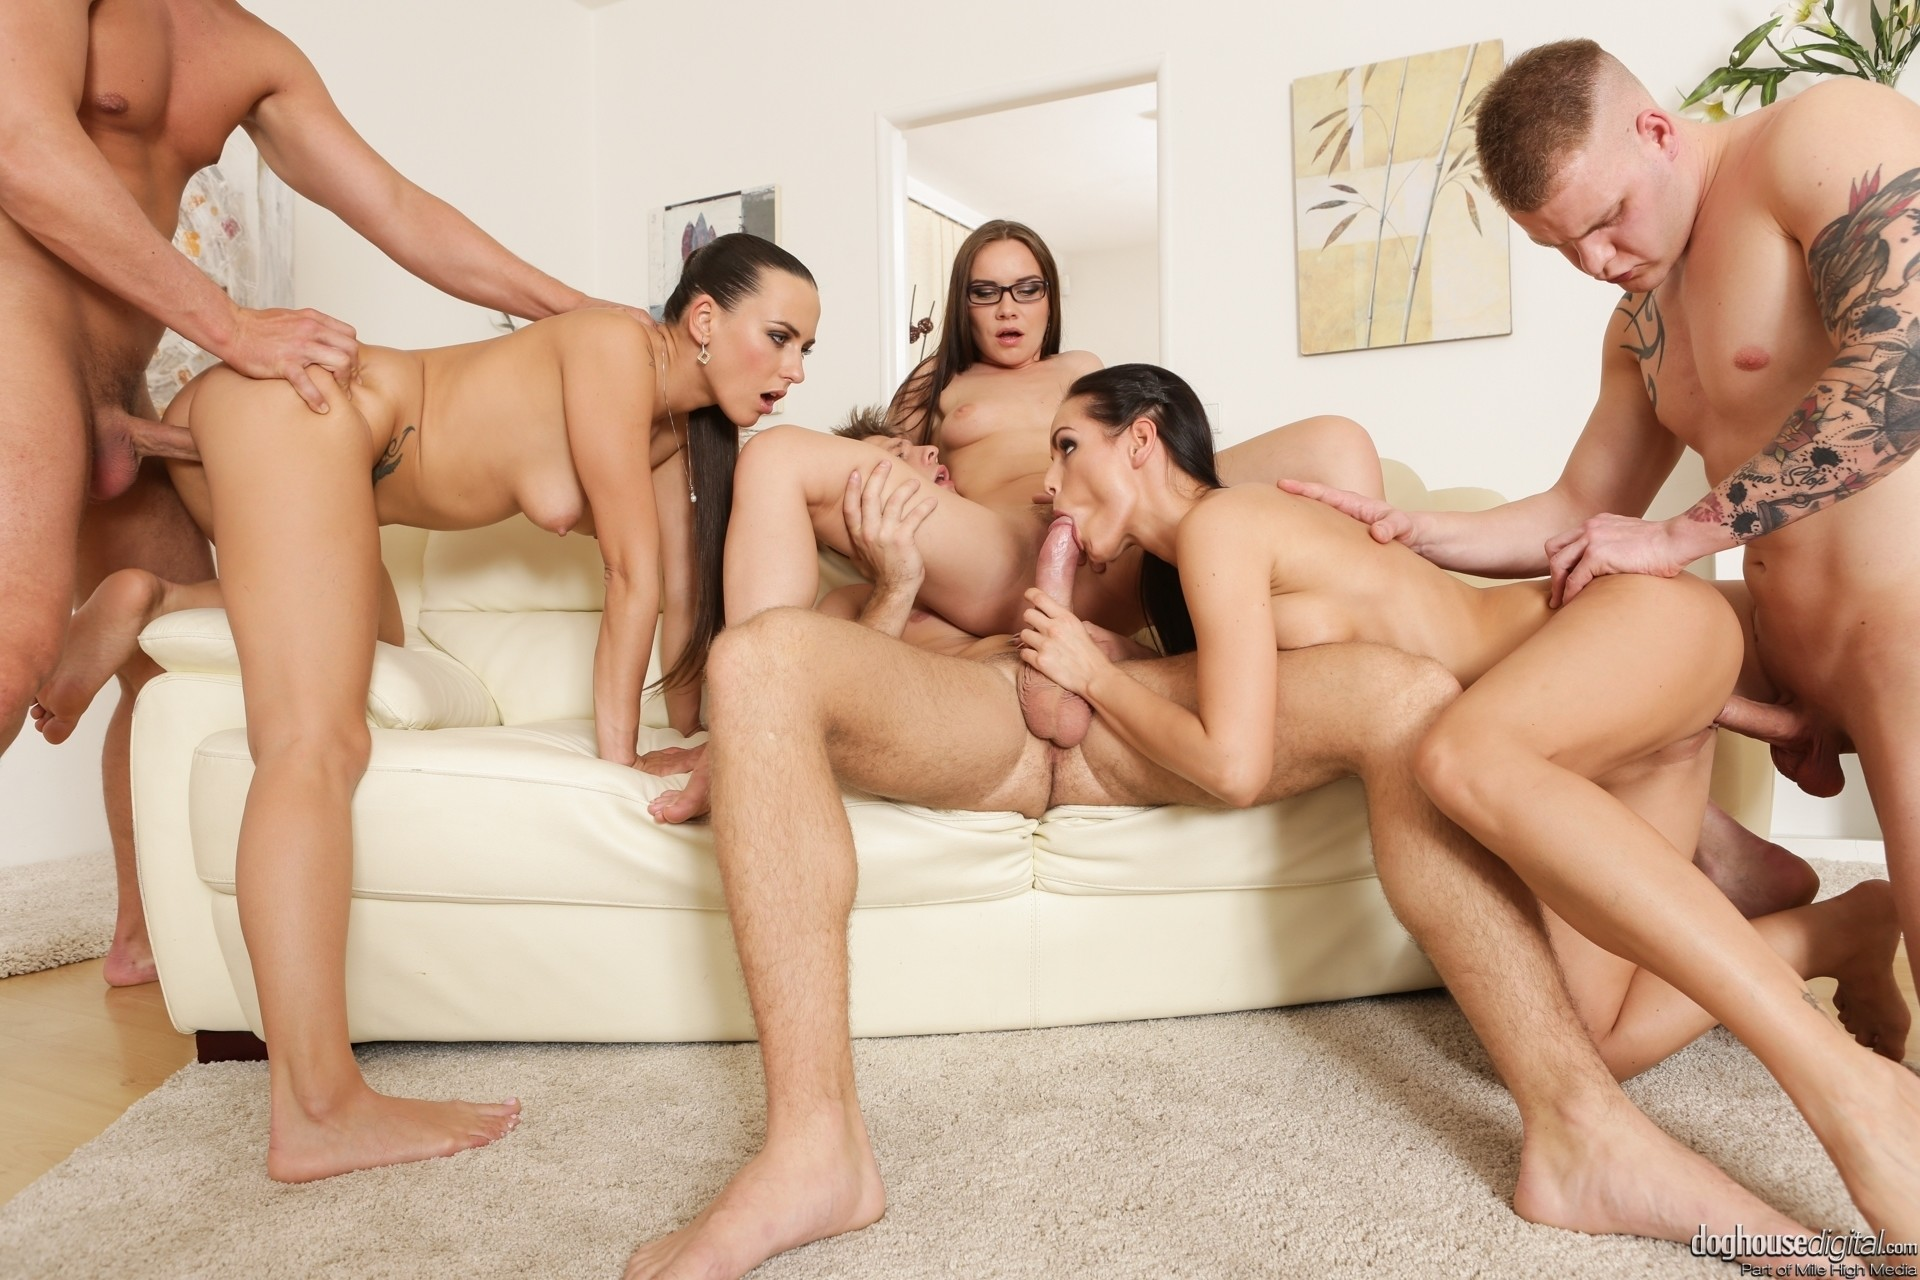 Orgy, gangbang, group sex and sexuals madness